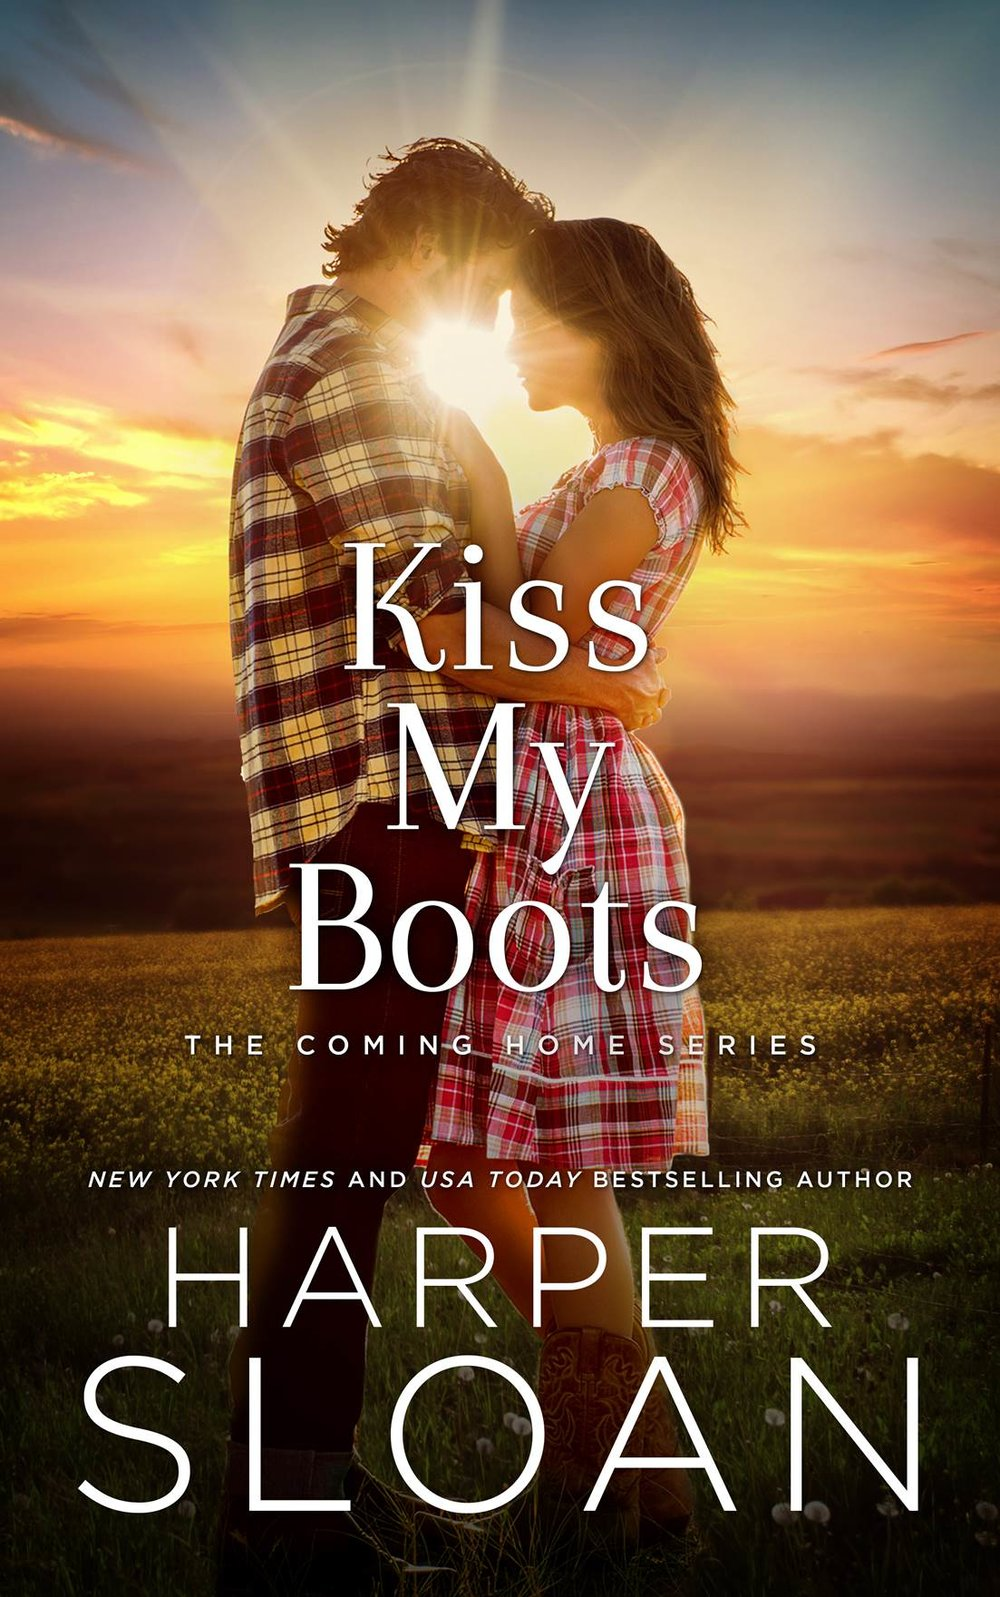 KISS MY BOOTS ~ By Harper Sloan   In this second of the sultry, Western-set Coming Home series from   New York Times   bestselling author Harper Sloan, Quinn Davis might finally have a shot at her own happily-ever-after—but will she let love in, or will she tell it to go ahead and kiss her boots?    Quinn Davis prefers to live her life quietly. She's the stereotypical tomboy with two overprotective big brothers who have always been there to protect her, especially from devilishly handsome cowboys with silver tongues. That is, until Tate Montgomery comes riding into town. Their first meeting, however, is far from something out of a fairy tale and only further convinces Quinn that men aren't worth her time.    The only place Tate Montgomery ever truly felt at home growing up was during the long, sweltering summer months he spent at his Gram and Paw's farm in Pine Oak, Texas. Now, Tate has returned to his childhood sanctuary seeking a fresh start—but if he's being entirely honest, he's not just back for the wranglers and Stetsons. During those summers, Quinn was a friend-turned-young-love who Tate lost when life threw him a curveball and he cut all ties to his past; but all it takes is one glance at the raven-haired beauty he did his best to forget for him to realize just how much he's been missing….     Amazon US  ~  Amazon Paperback    Amazon UK  ~  Amazon AU   ~  Amazon CA     B&N  ~  Kobo  ~   iBooks  ~  BAM   ~  Google